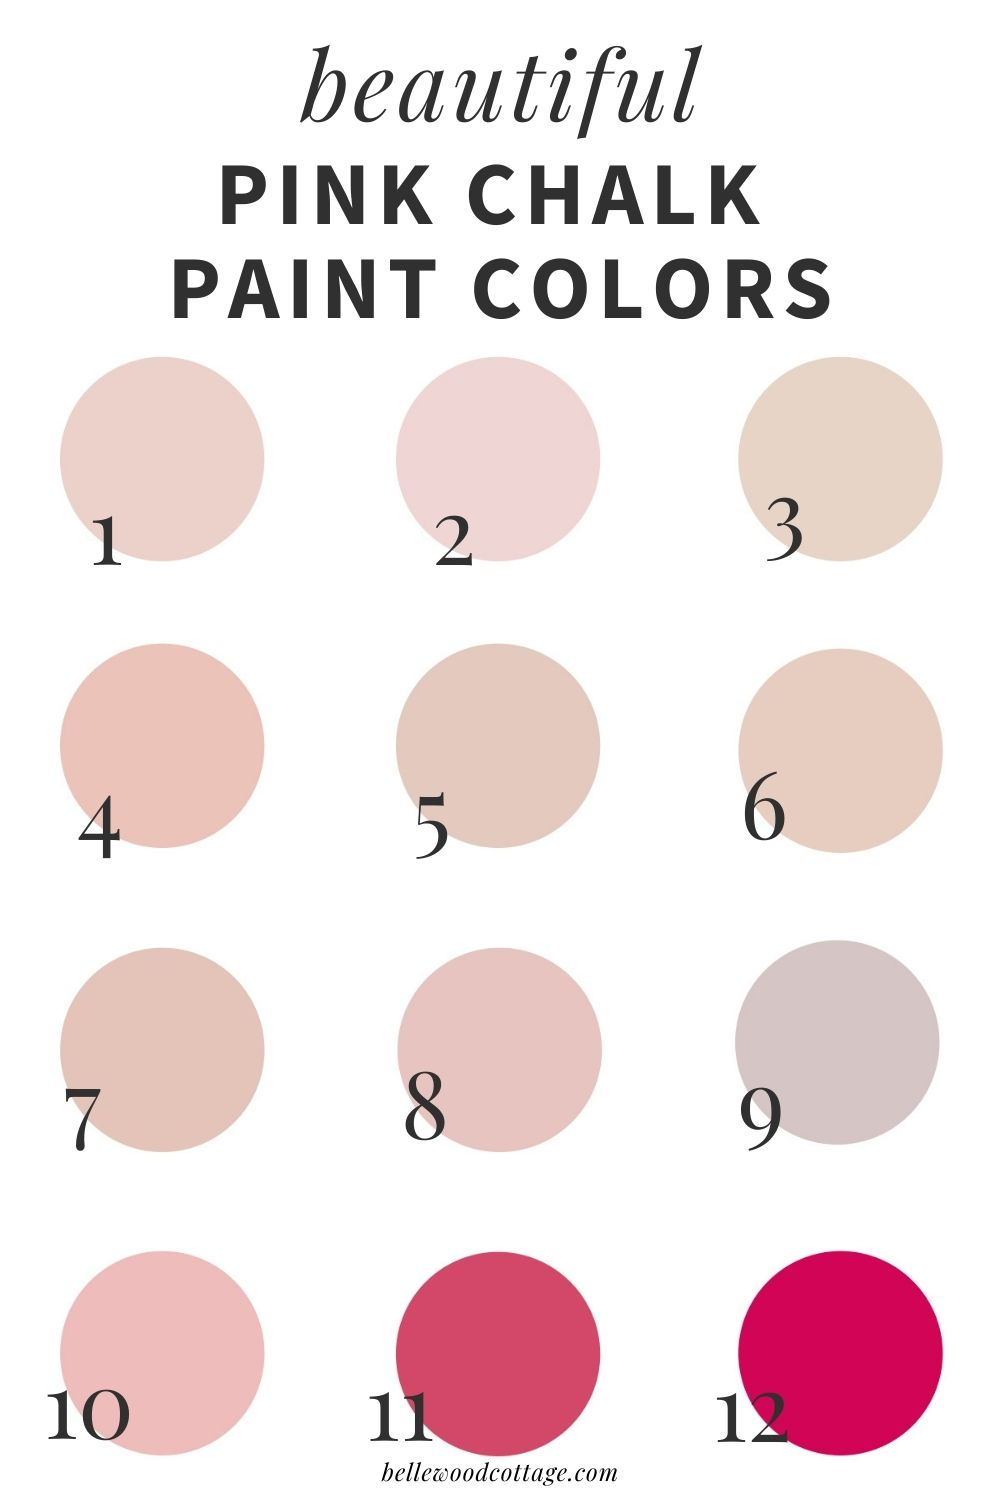 """A collage of 12 numbered pink paint samples with the words, """"Beautiful Pink Chalk Paint Colors""""."""